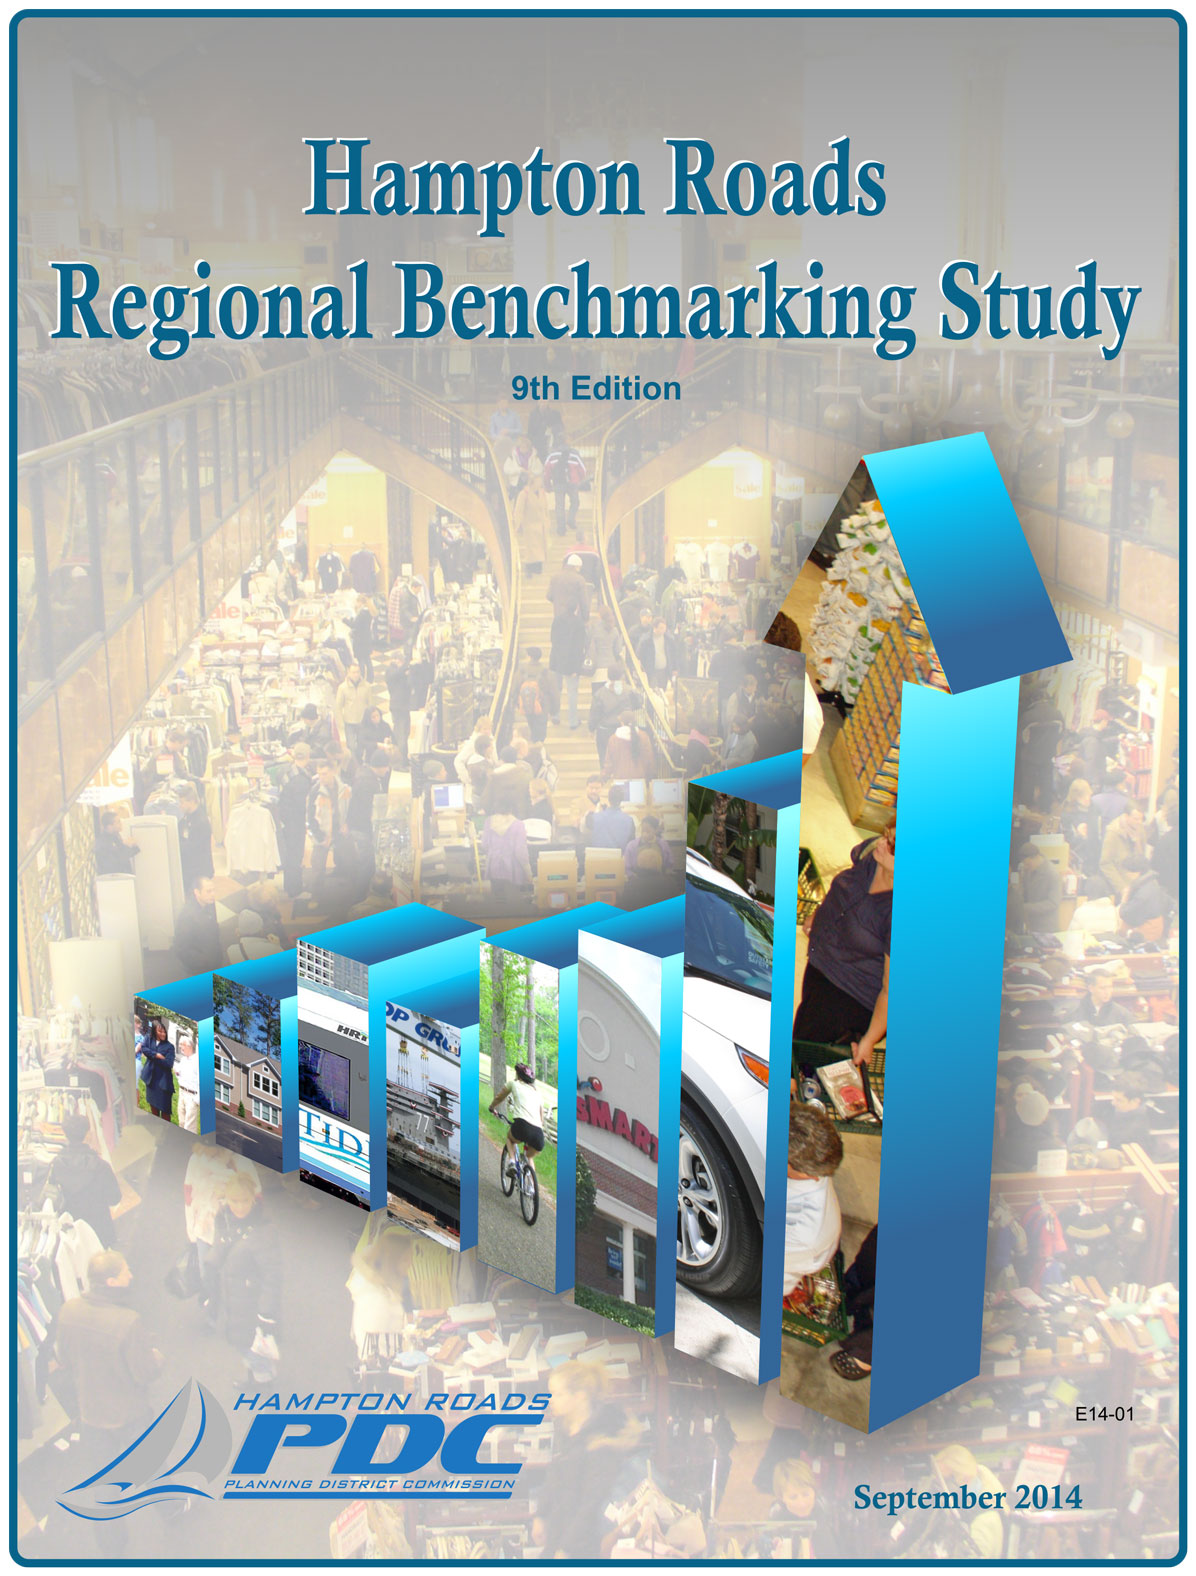 2014 Benchmarking Cover Image